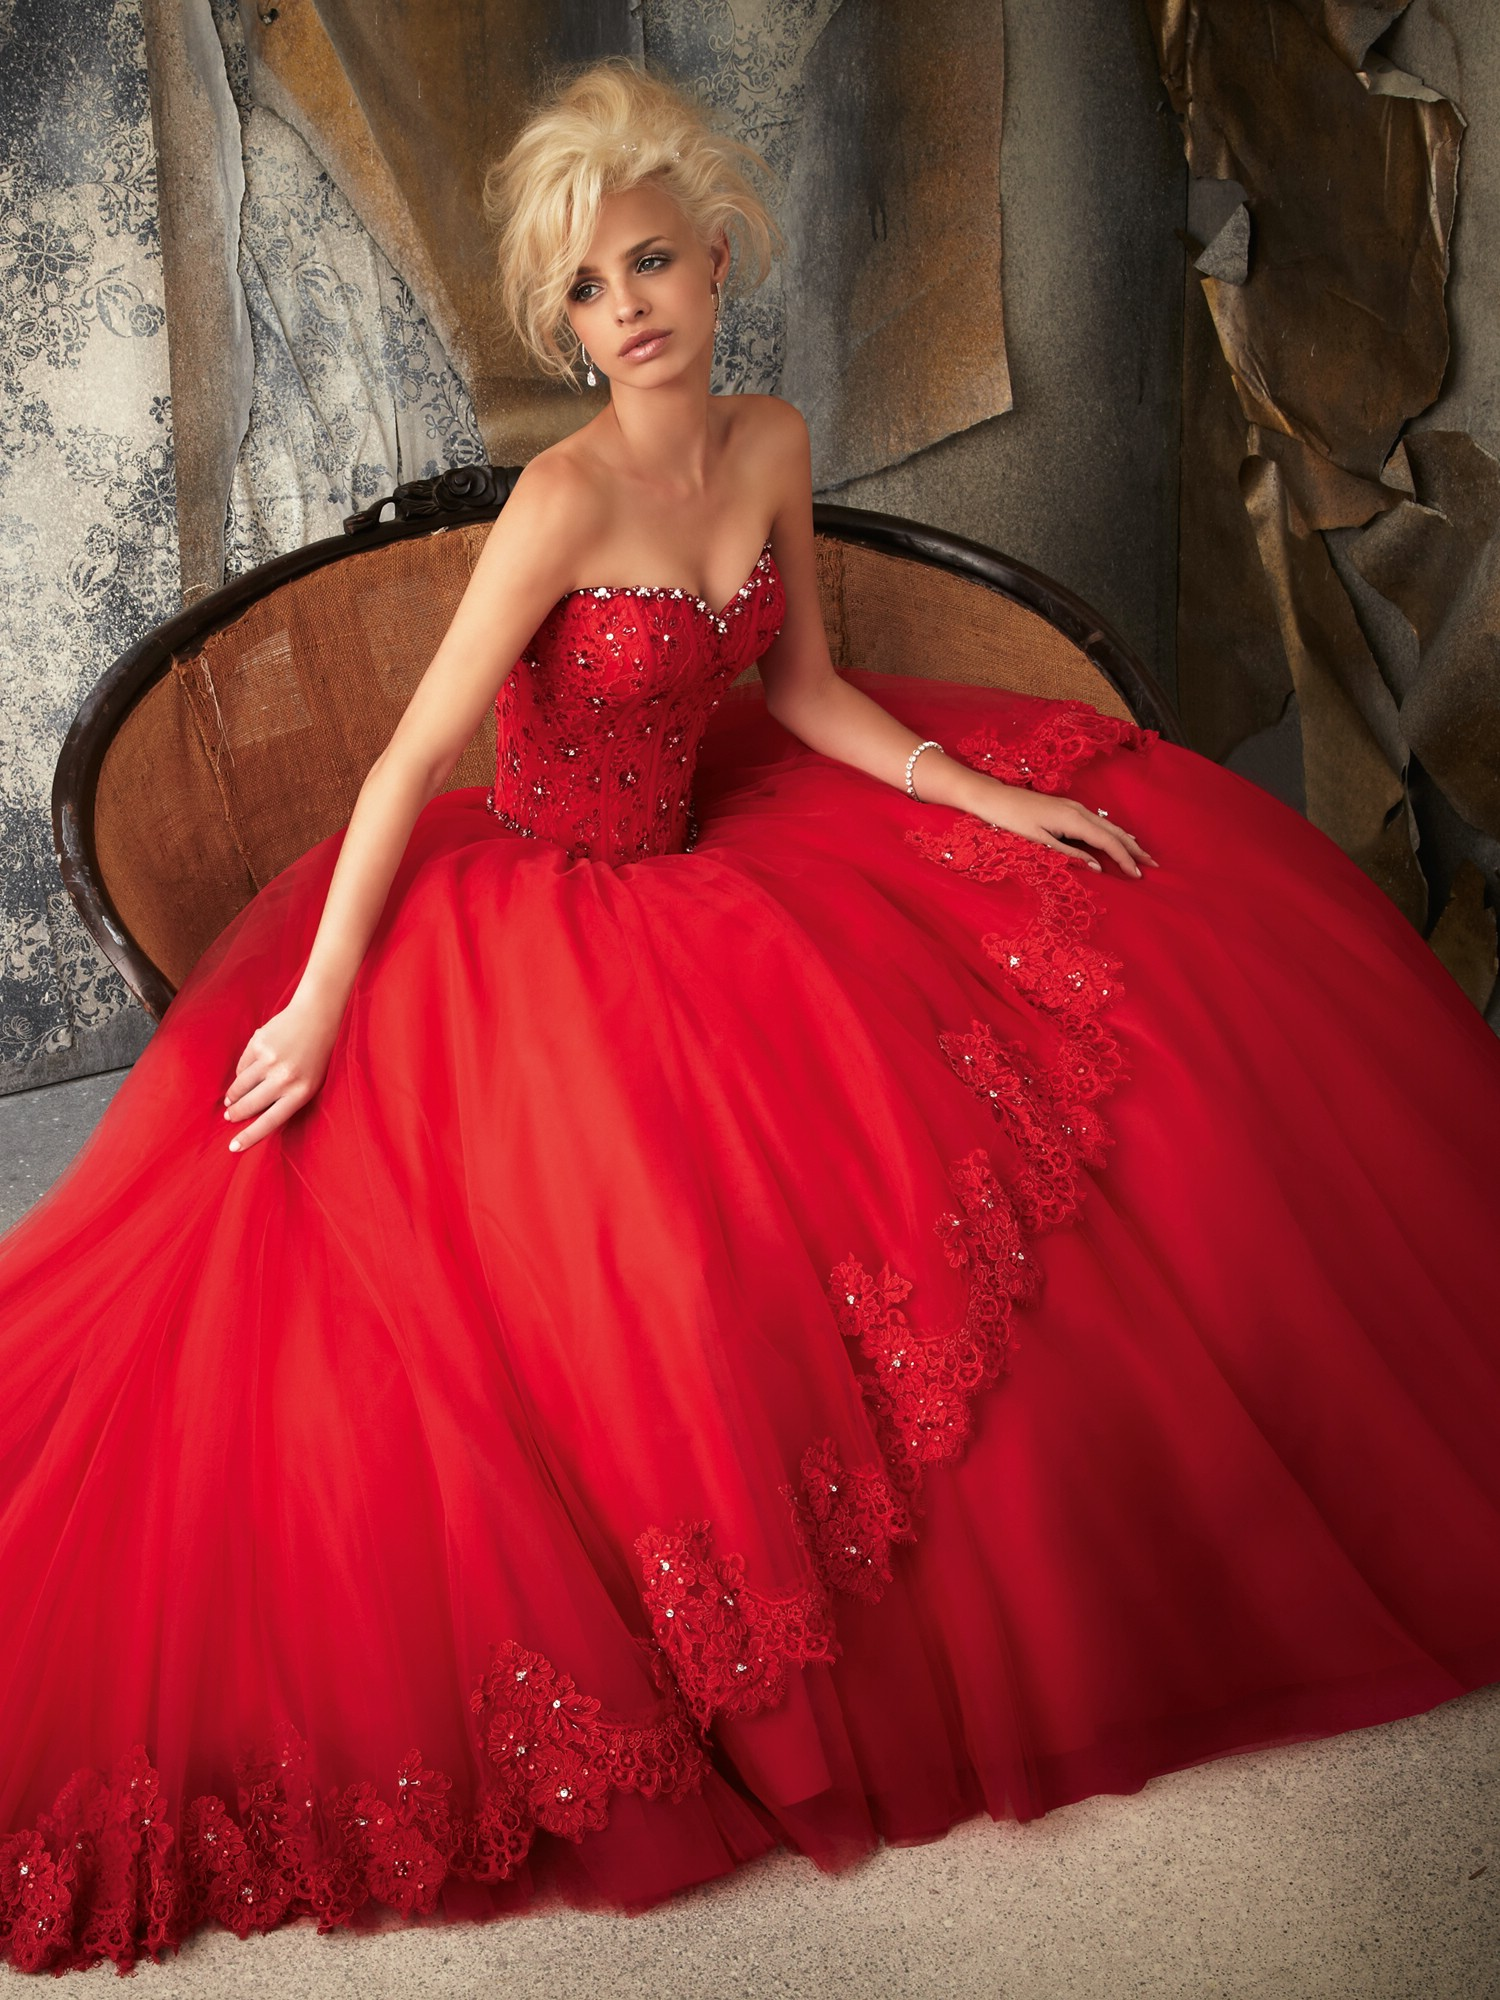 Neat-Red-Wedding-Dress-Photograph-Newest-Collection